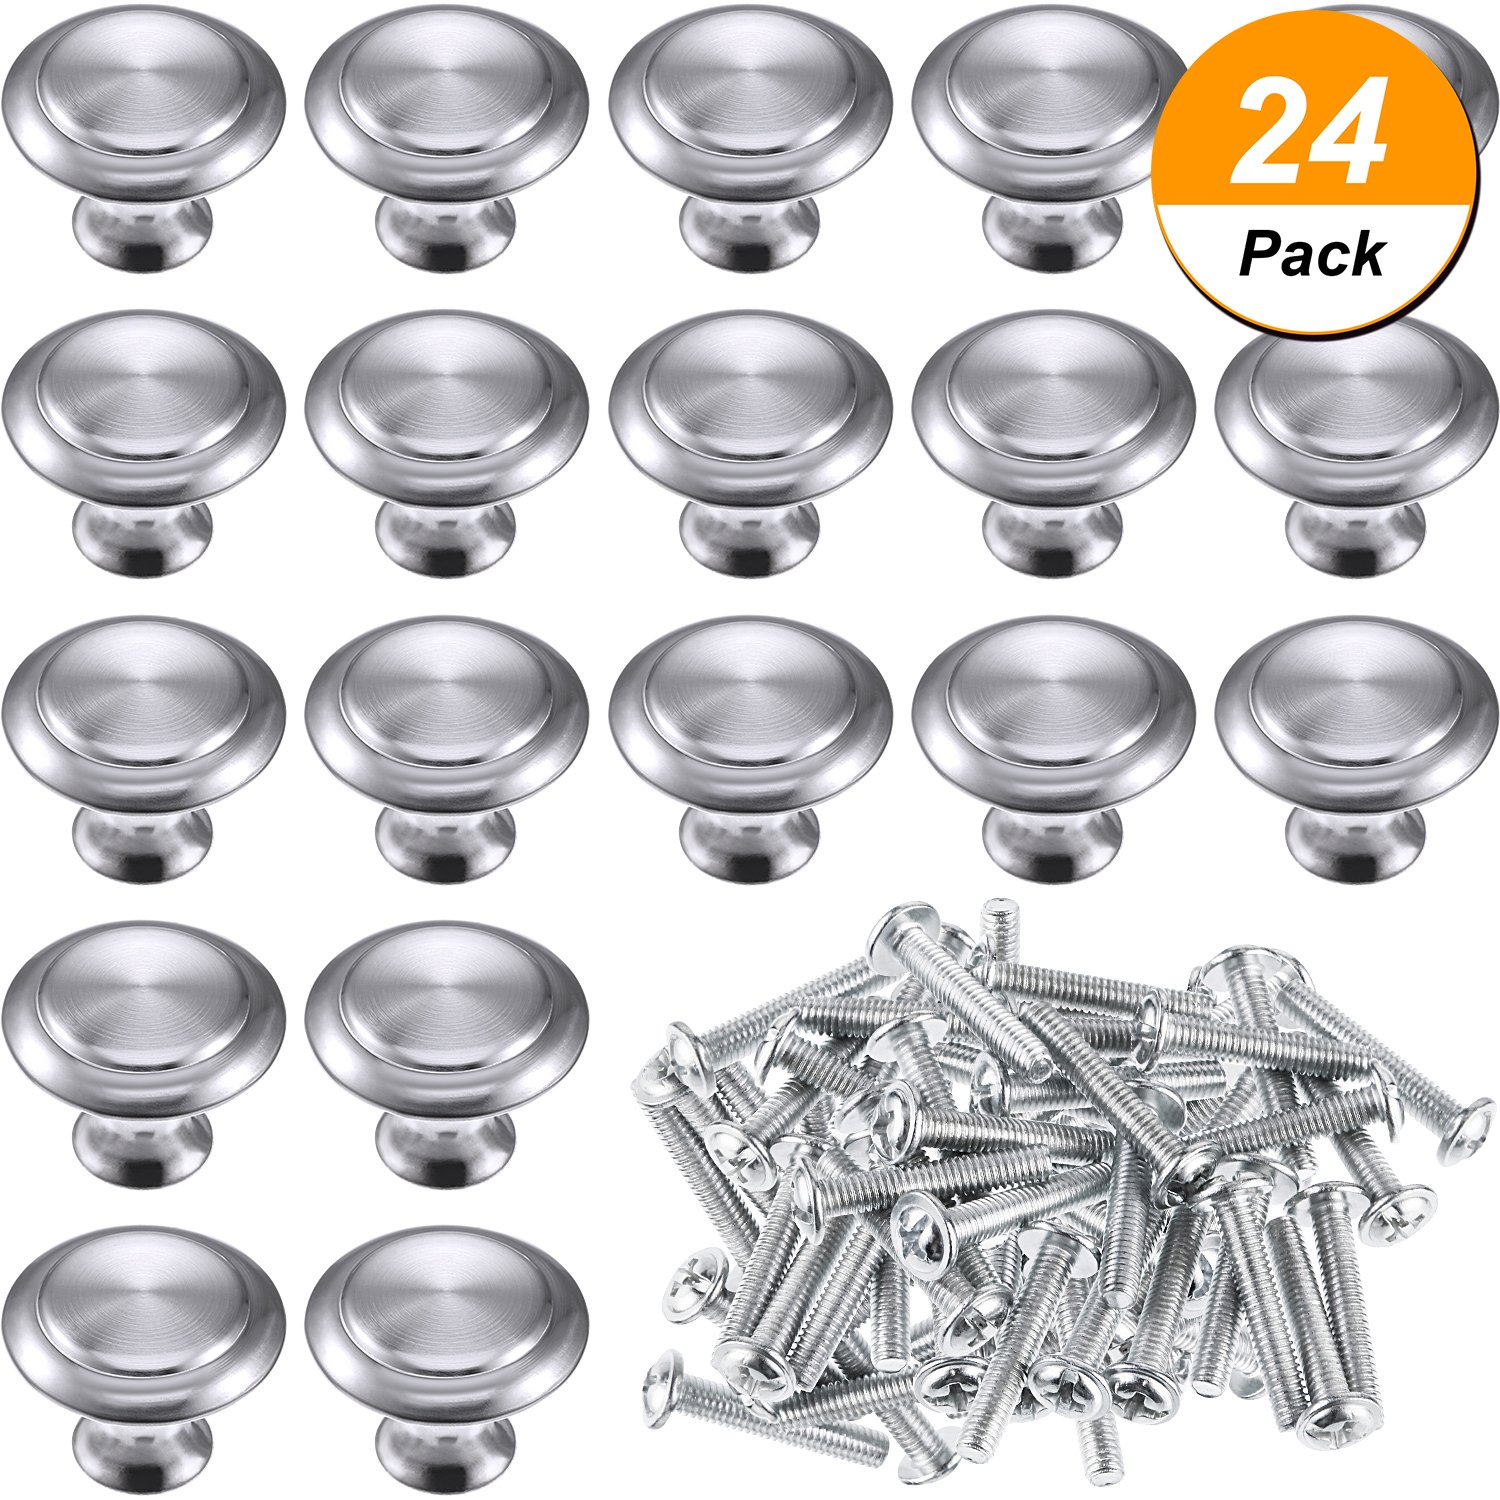 Bememo 24 Pack Silver Cabinet Knobs Kitchen Round Drawer Dresser Handles Kitchen Cabinet Round Pulls Hardware